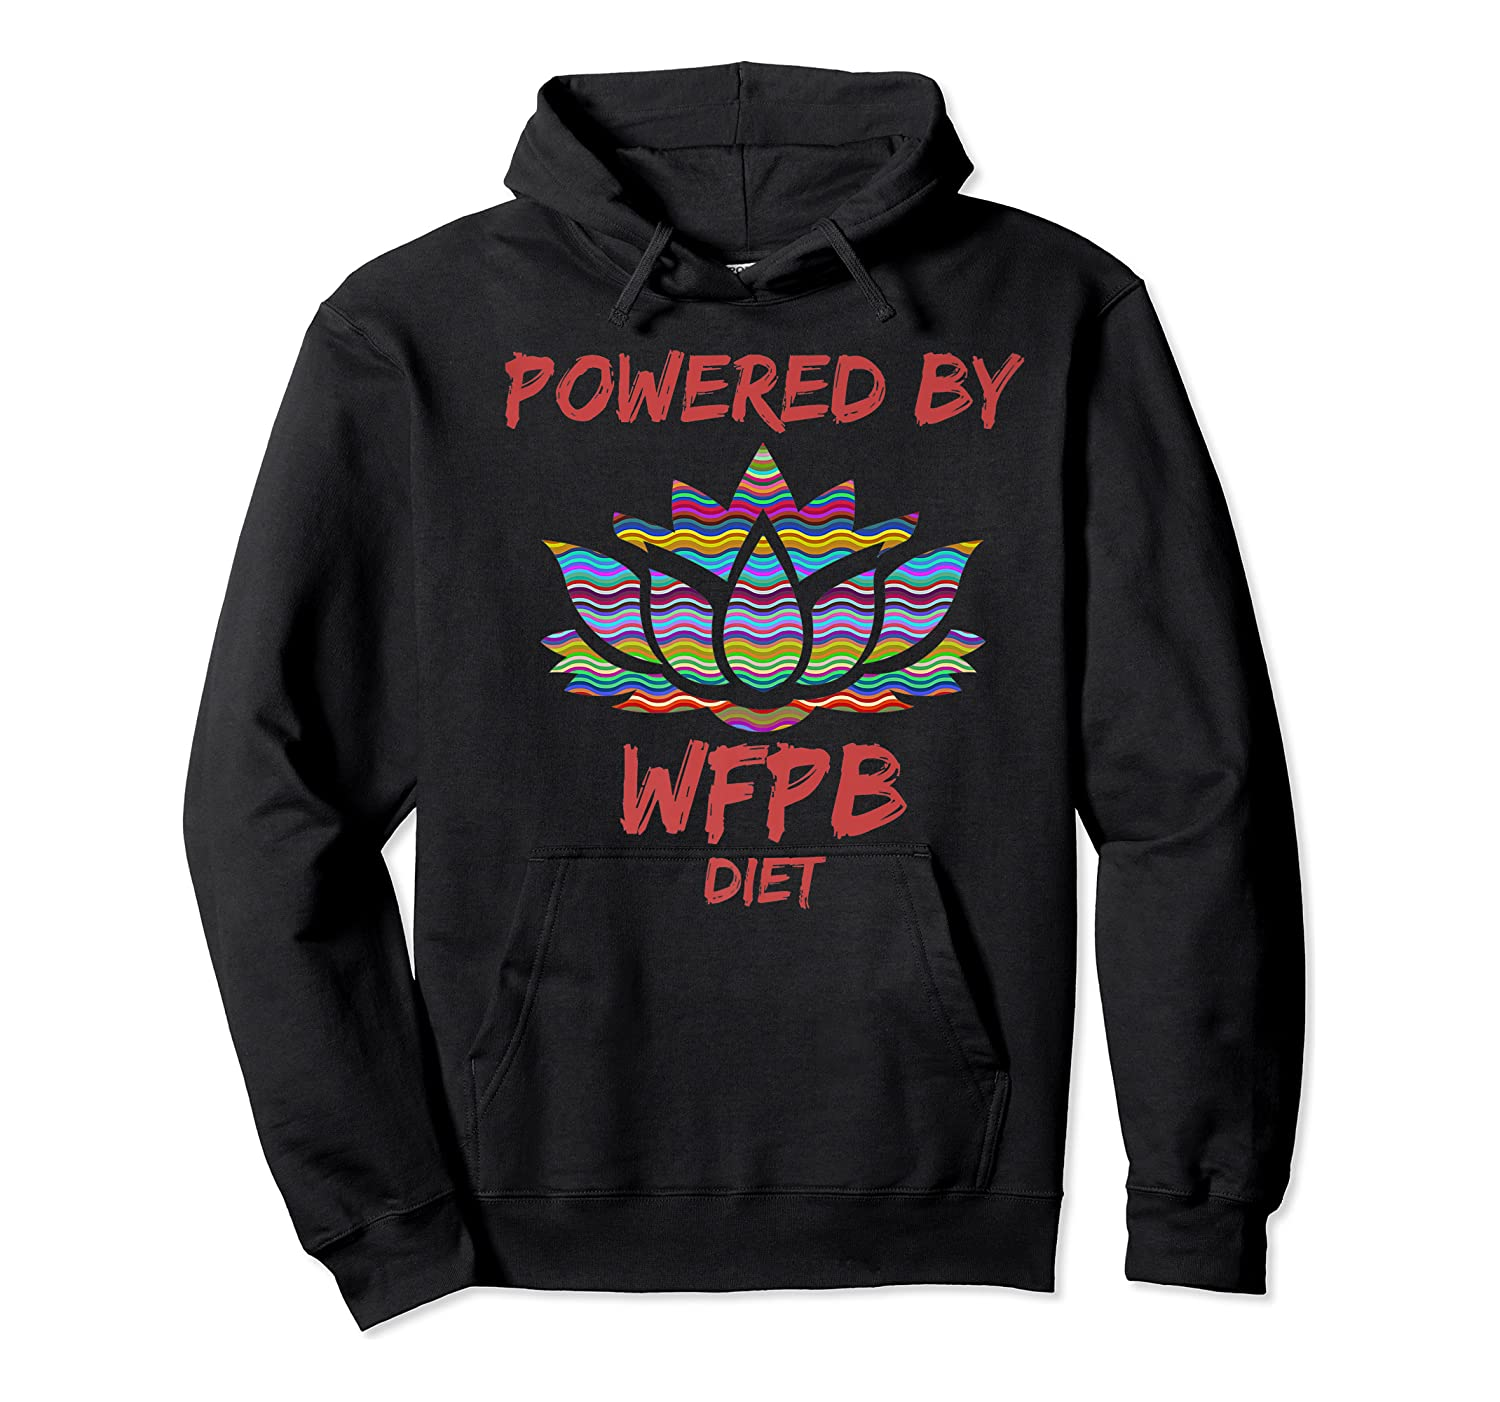 Wfpb , Powered By Whole Food Plant Based Diet Design Premium T-shirt Unisex Pullover Hoodie